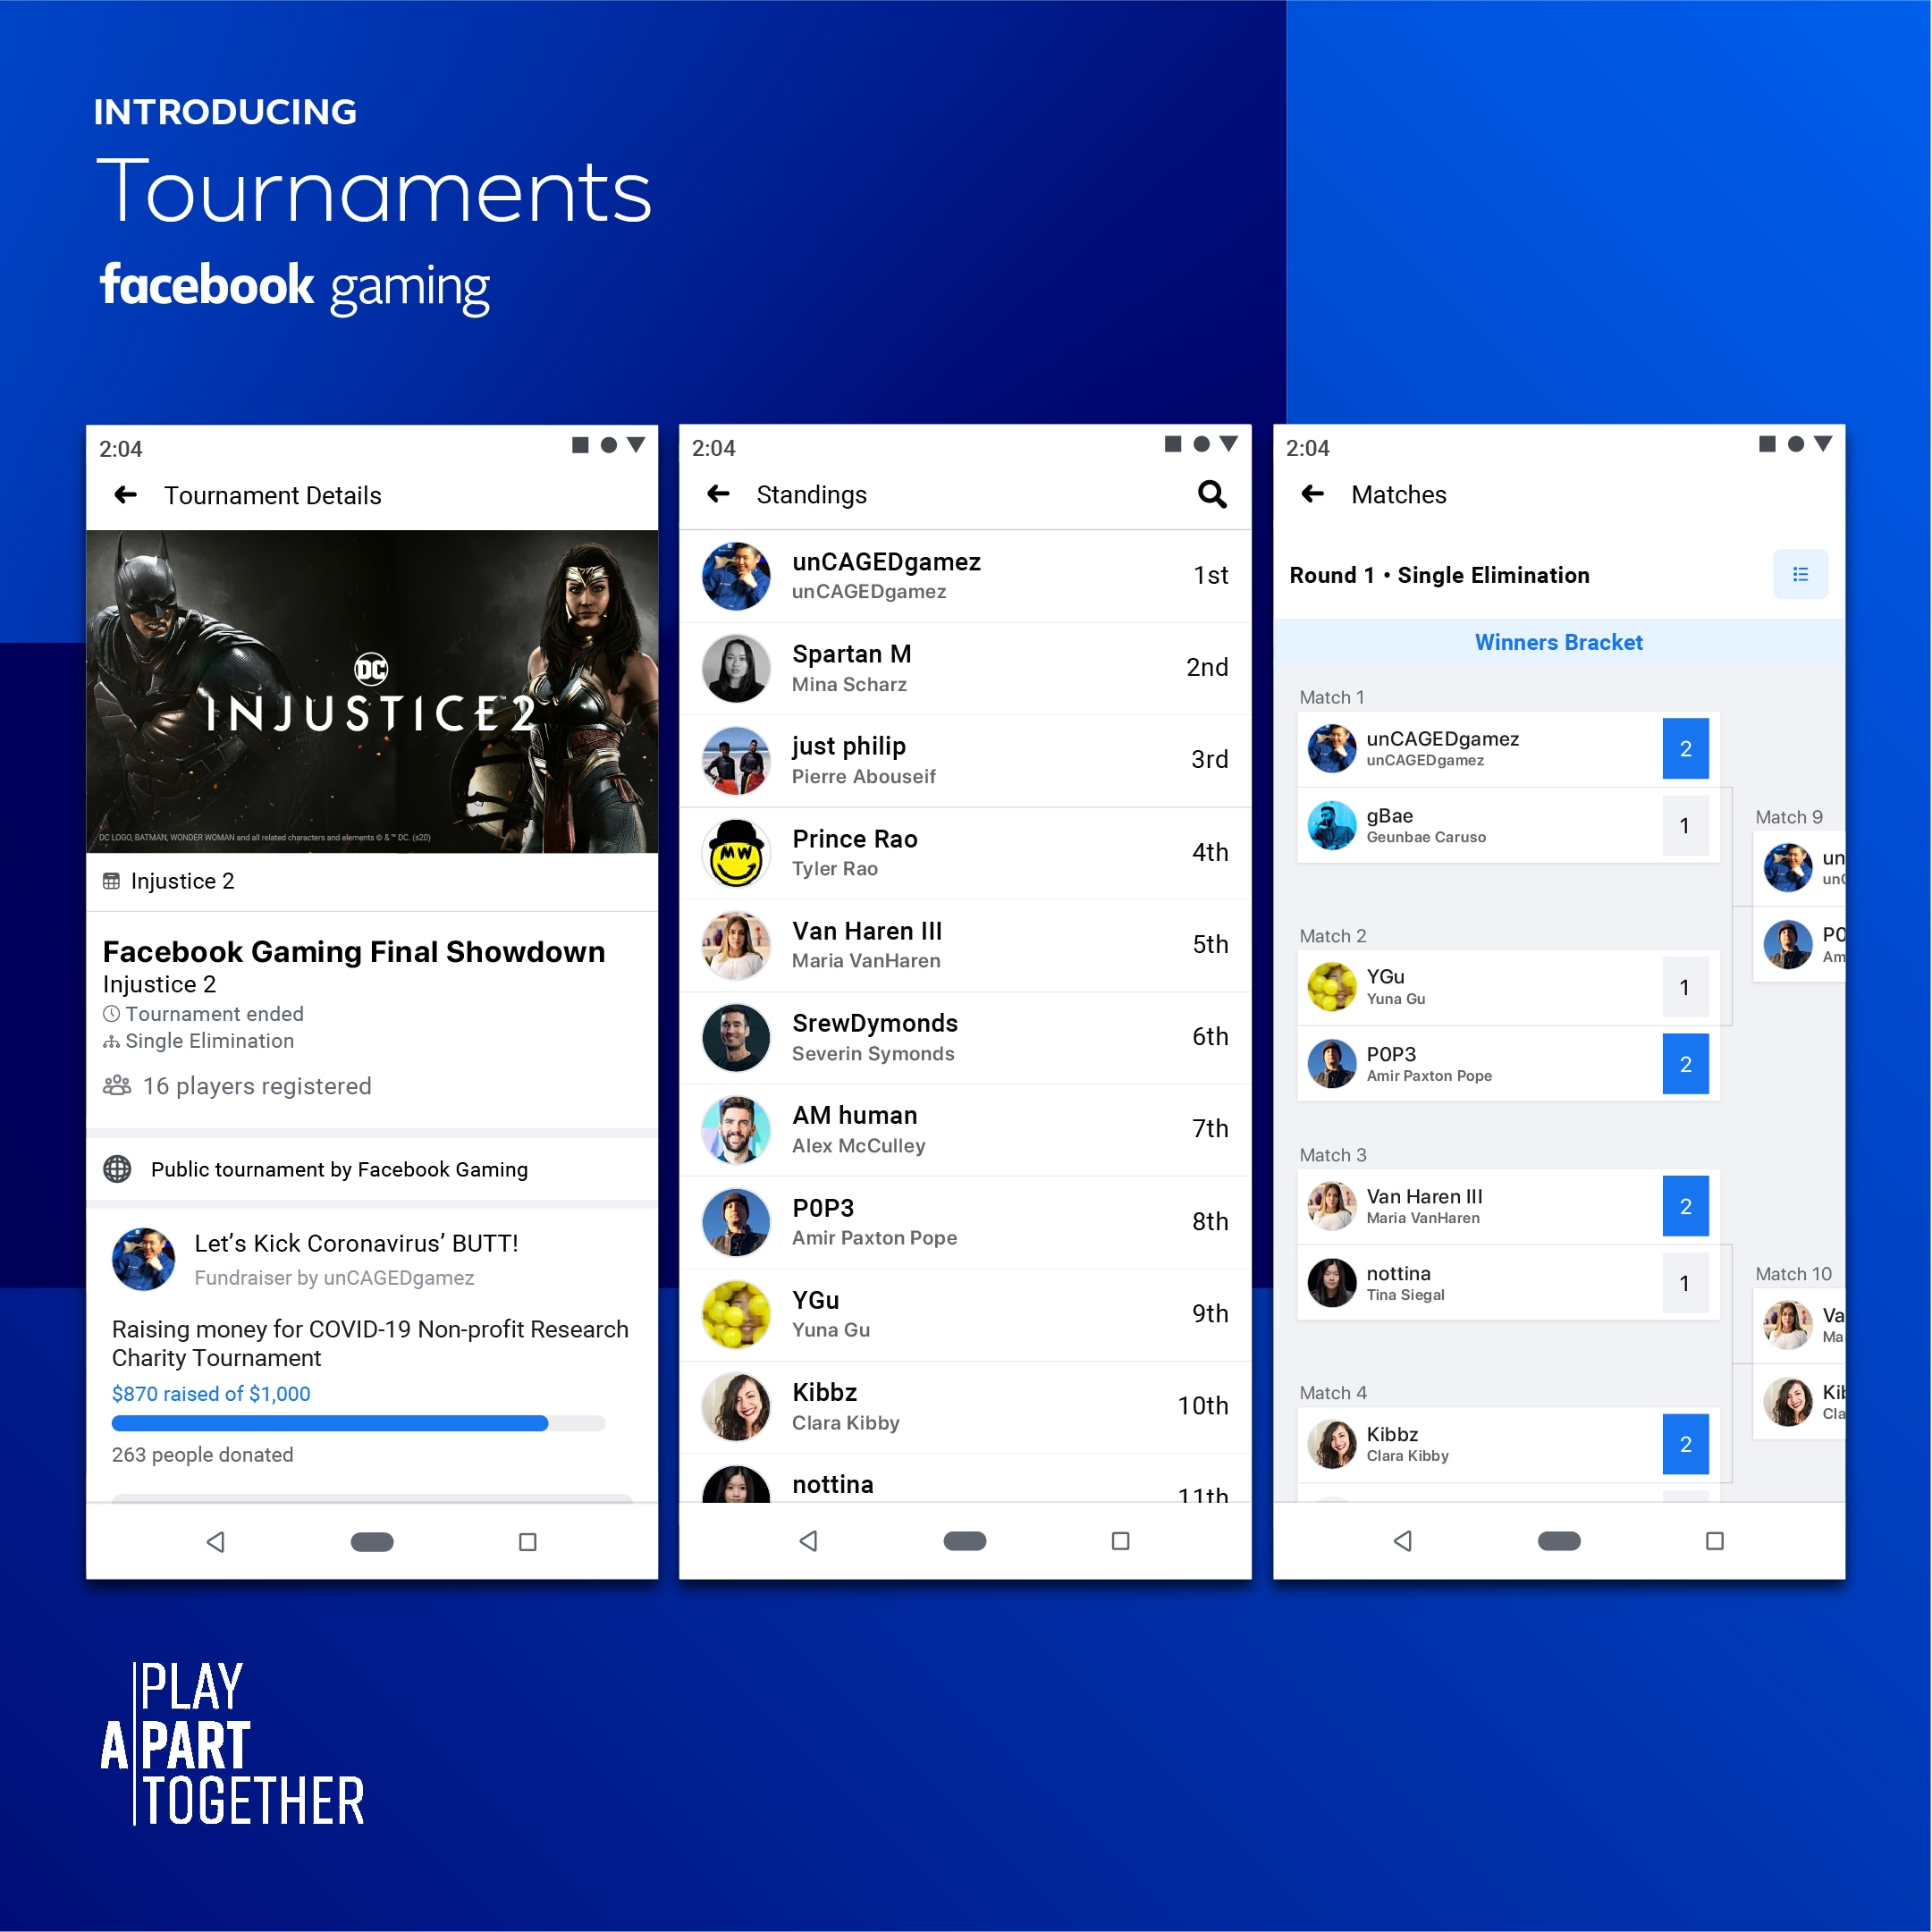 facebook gaming tournaments image screenshots Facebook Gaming